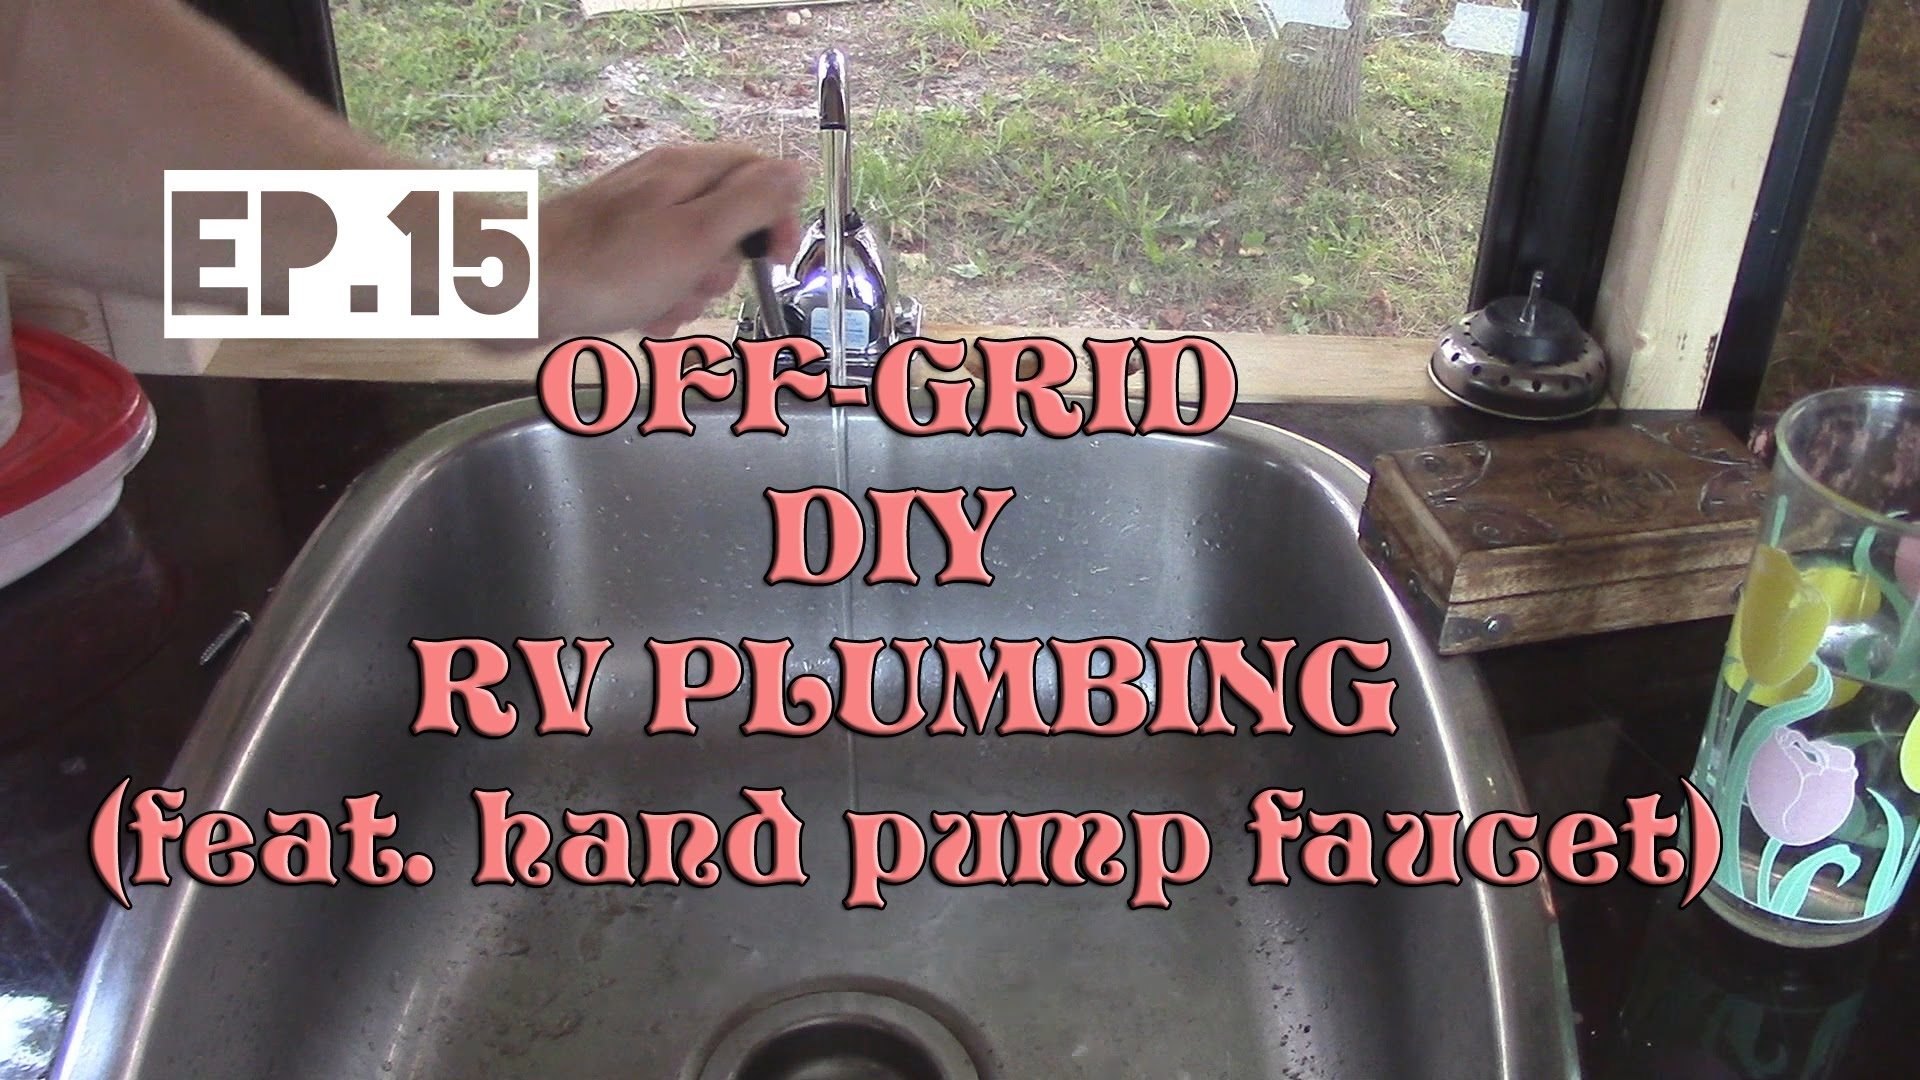 Ideas, foot pump rv faucet foot pump rv faucet full time rv ep15 off grid plumbing with hand pump faucet and 1920 x 1080  .